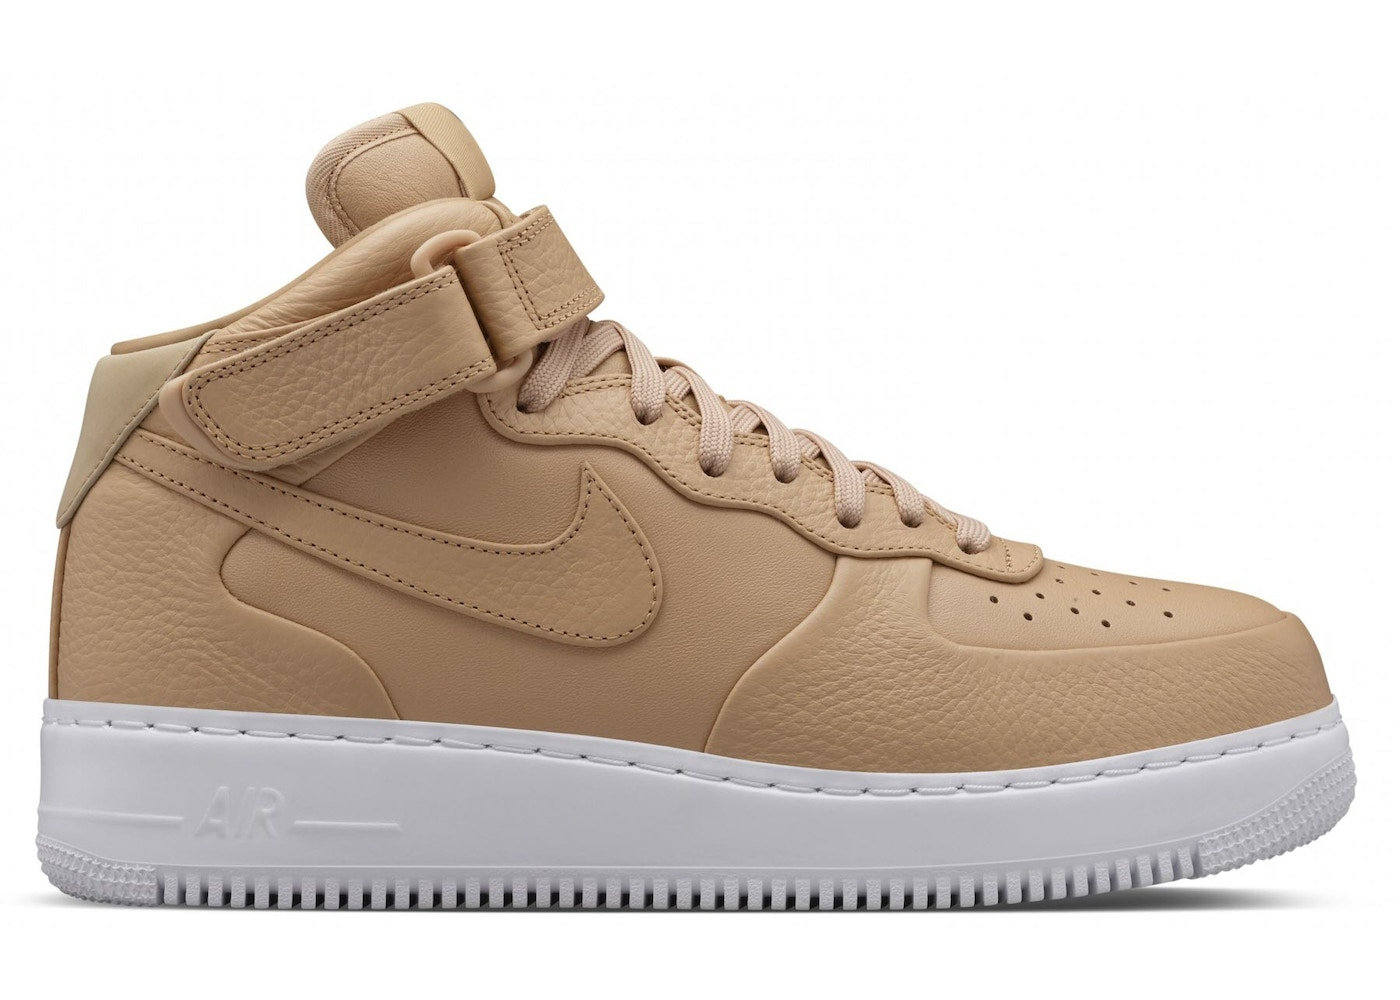 668581f8 Sell. or Ask. Size 8. View All Bids. Air Force 1 Mid Vachetta Tan